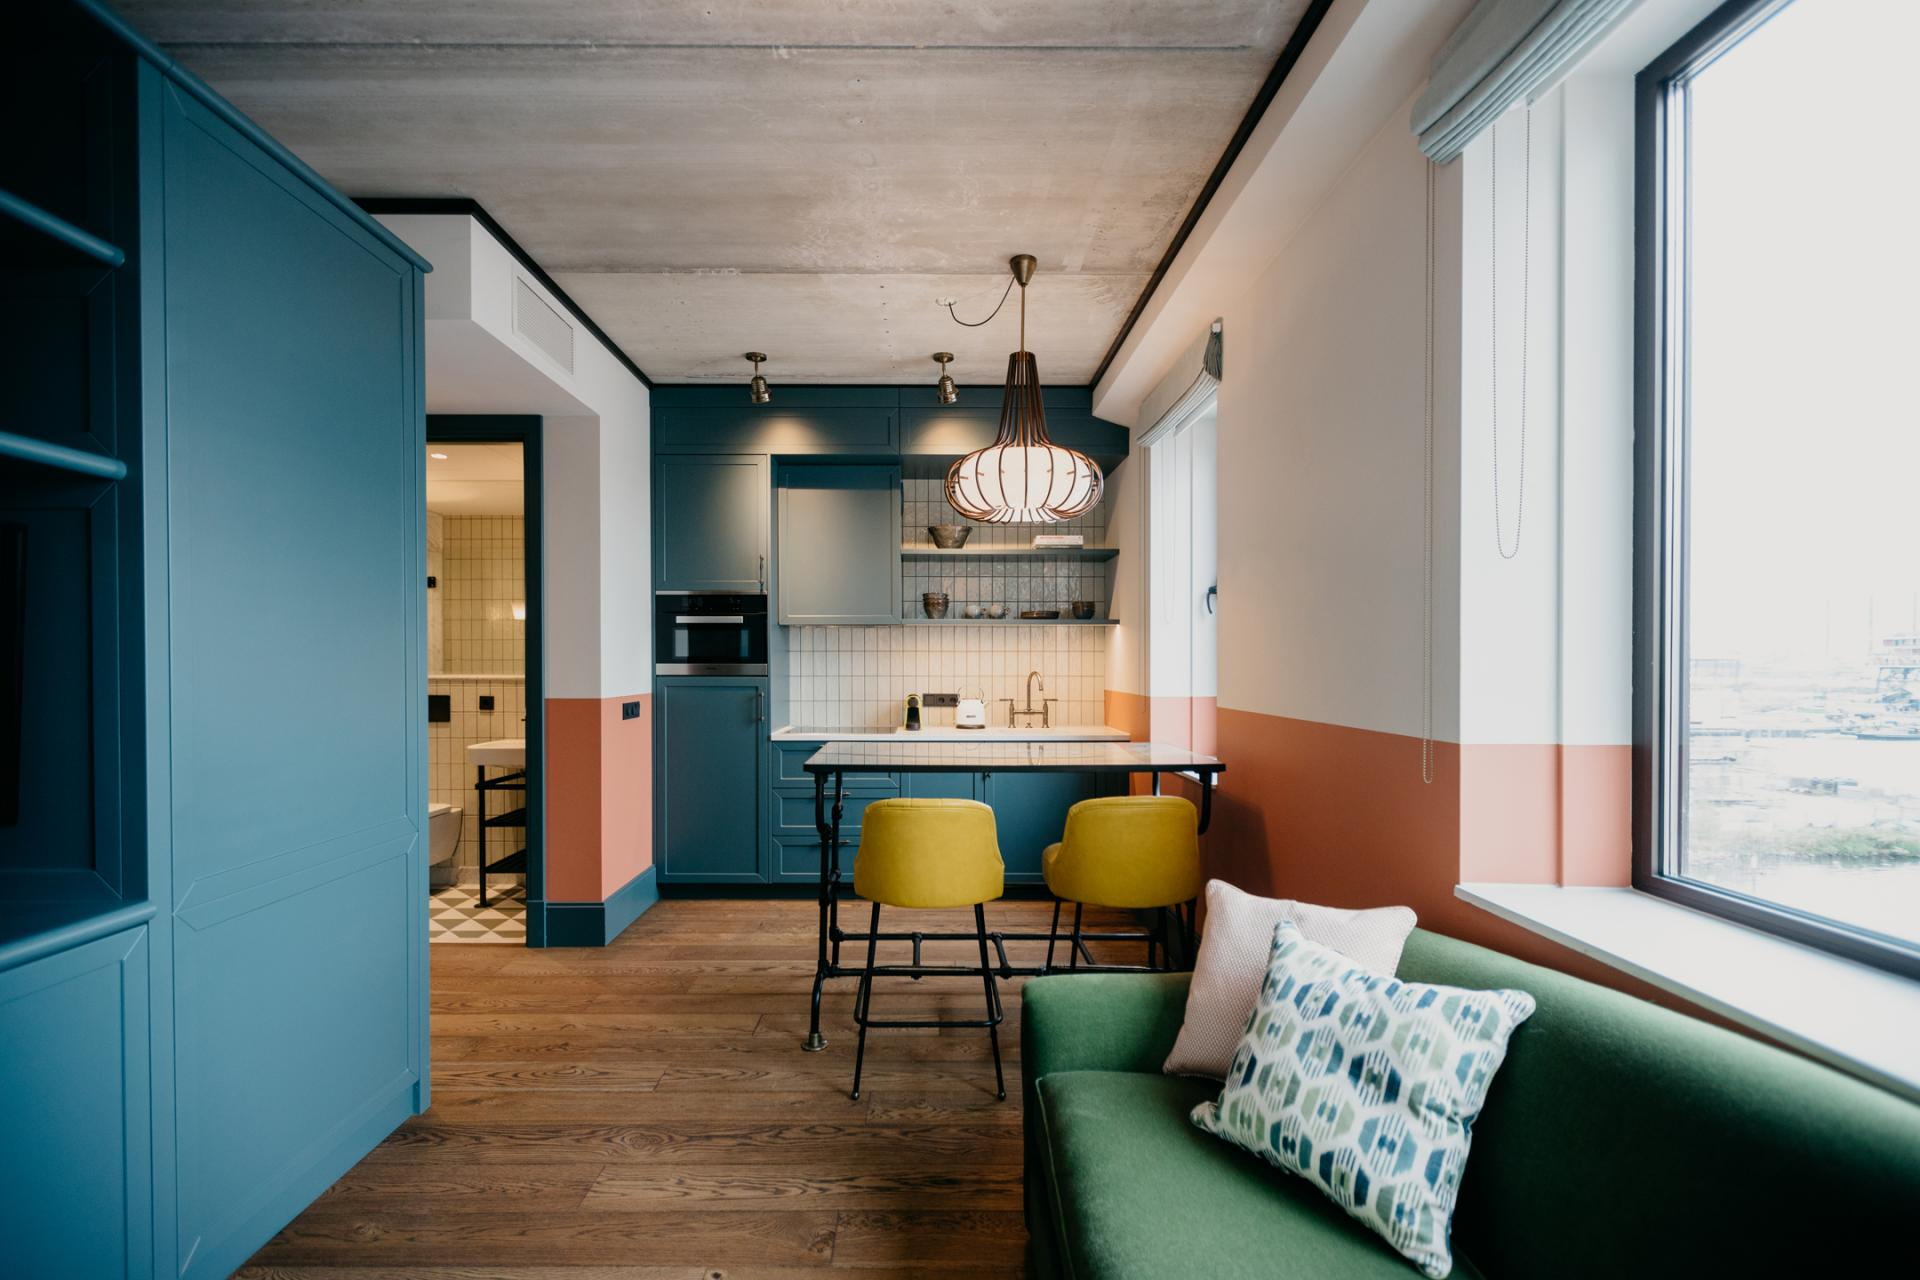 Living room at Boat & Co Apartments, Houthavens, Amsterdam